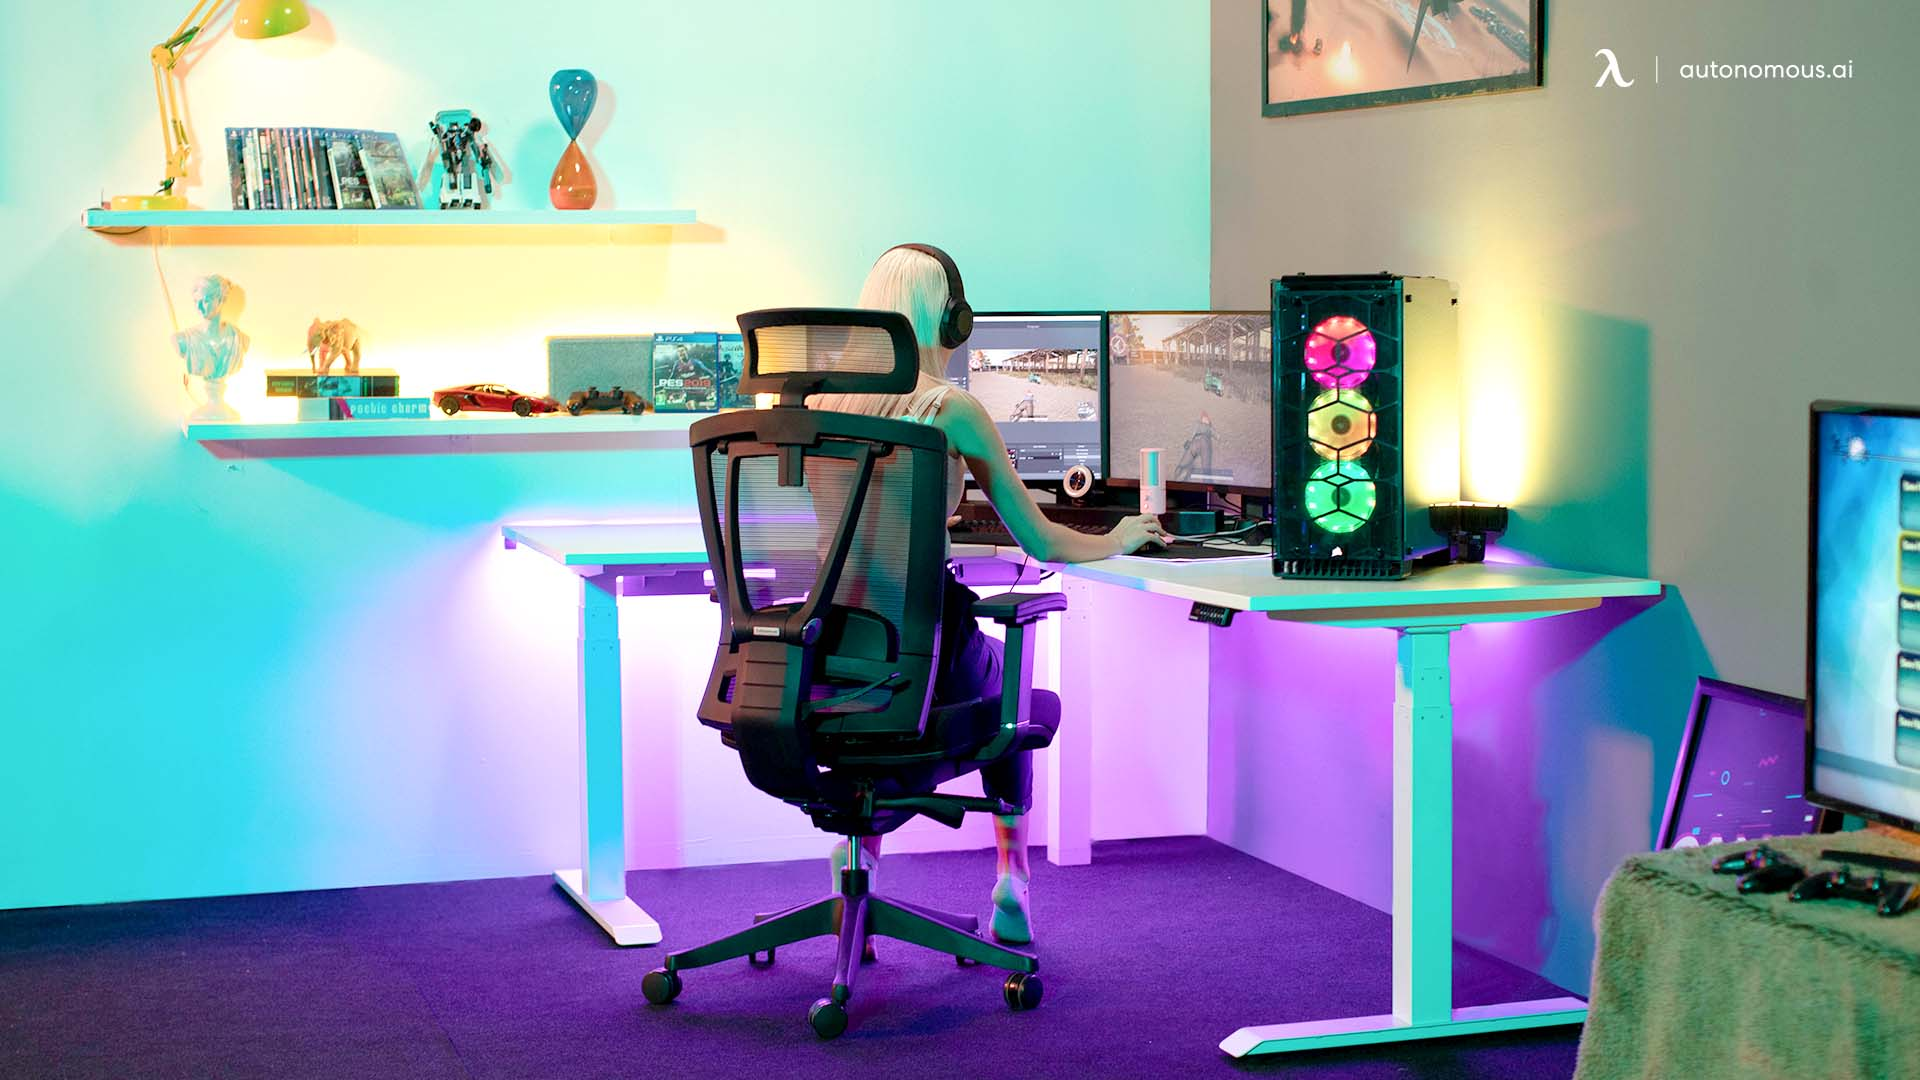 Enhancing Ergonomics with an Office Chair vs Gaming Chair